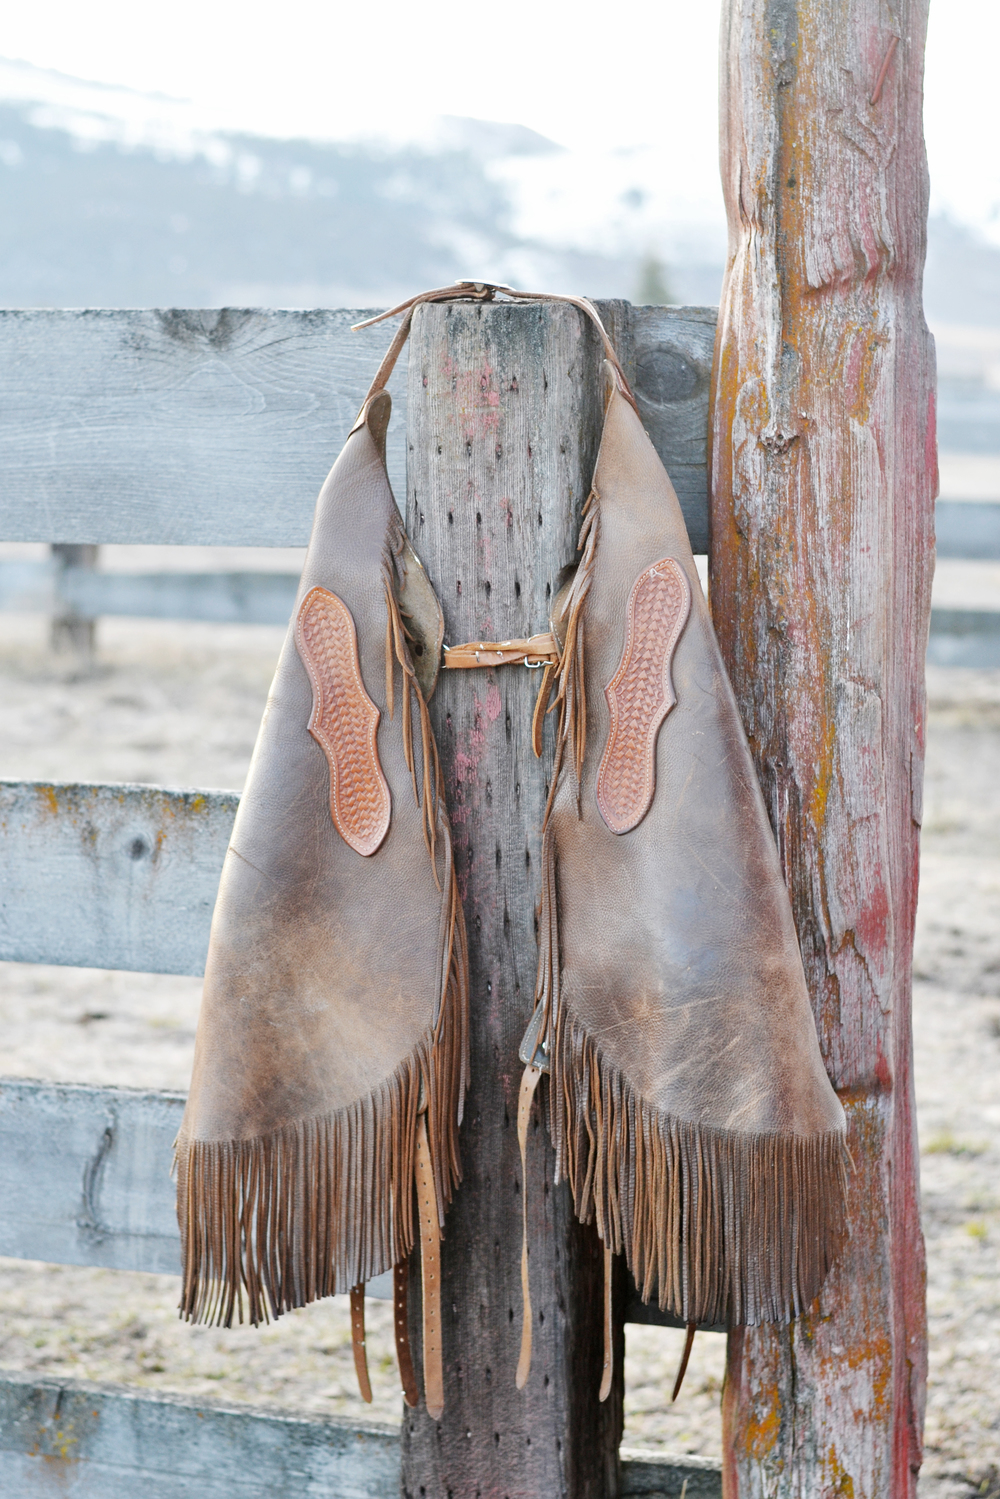 ranch living - a cowboy's chaps | Boxwood Avenue